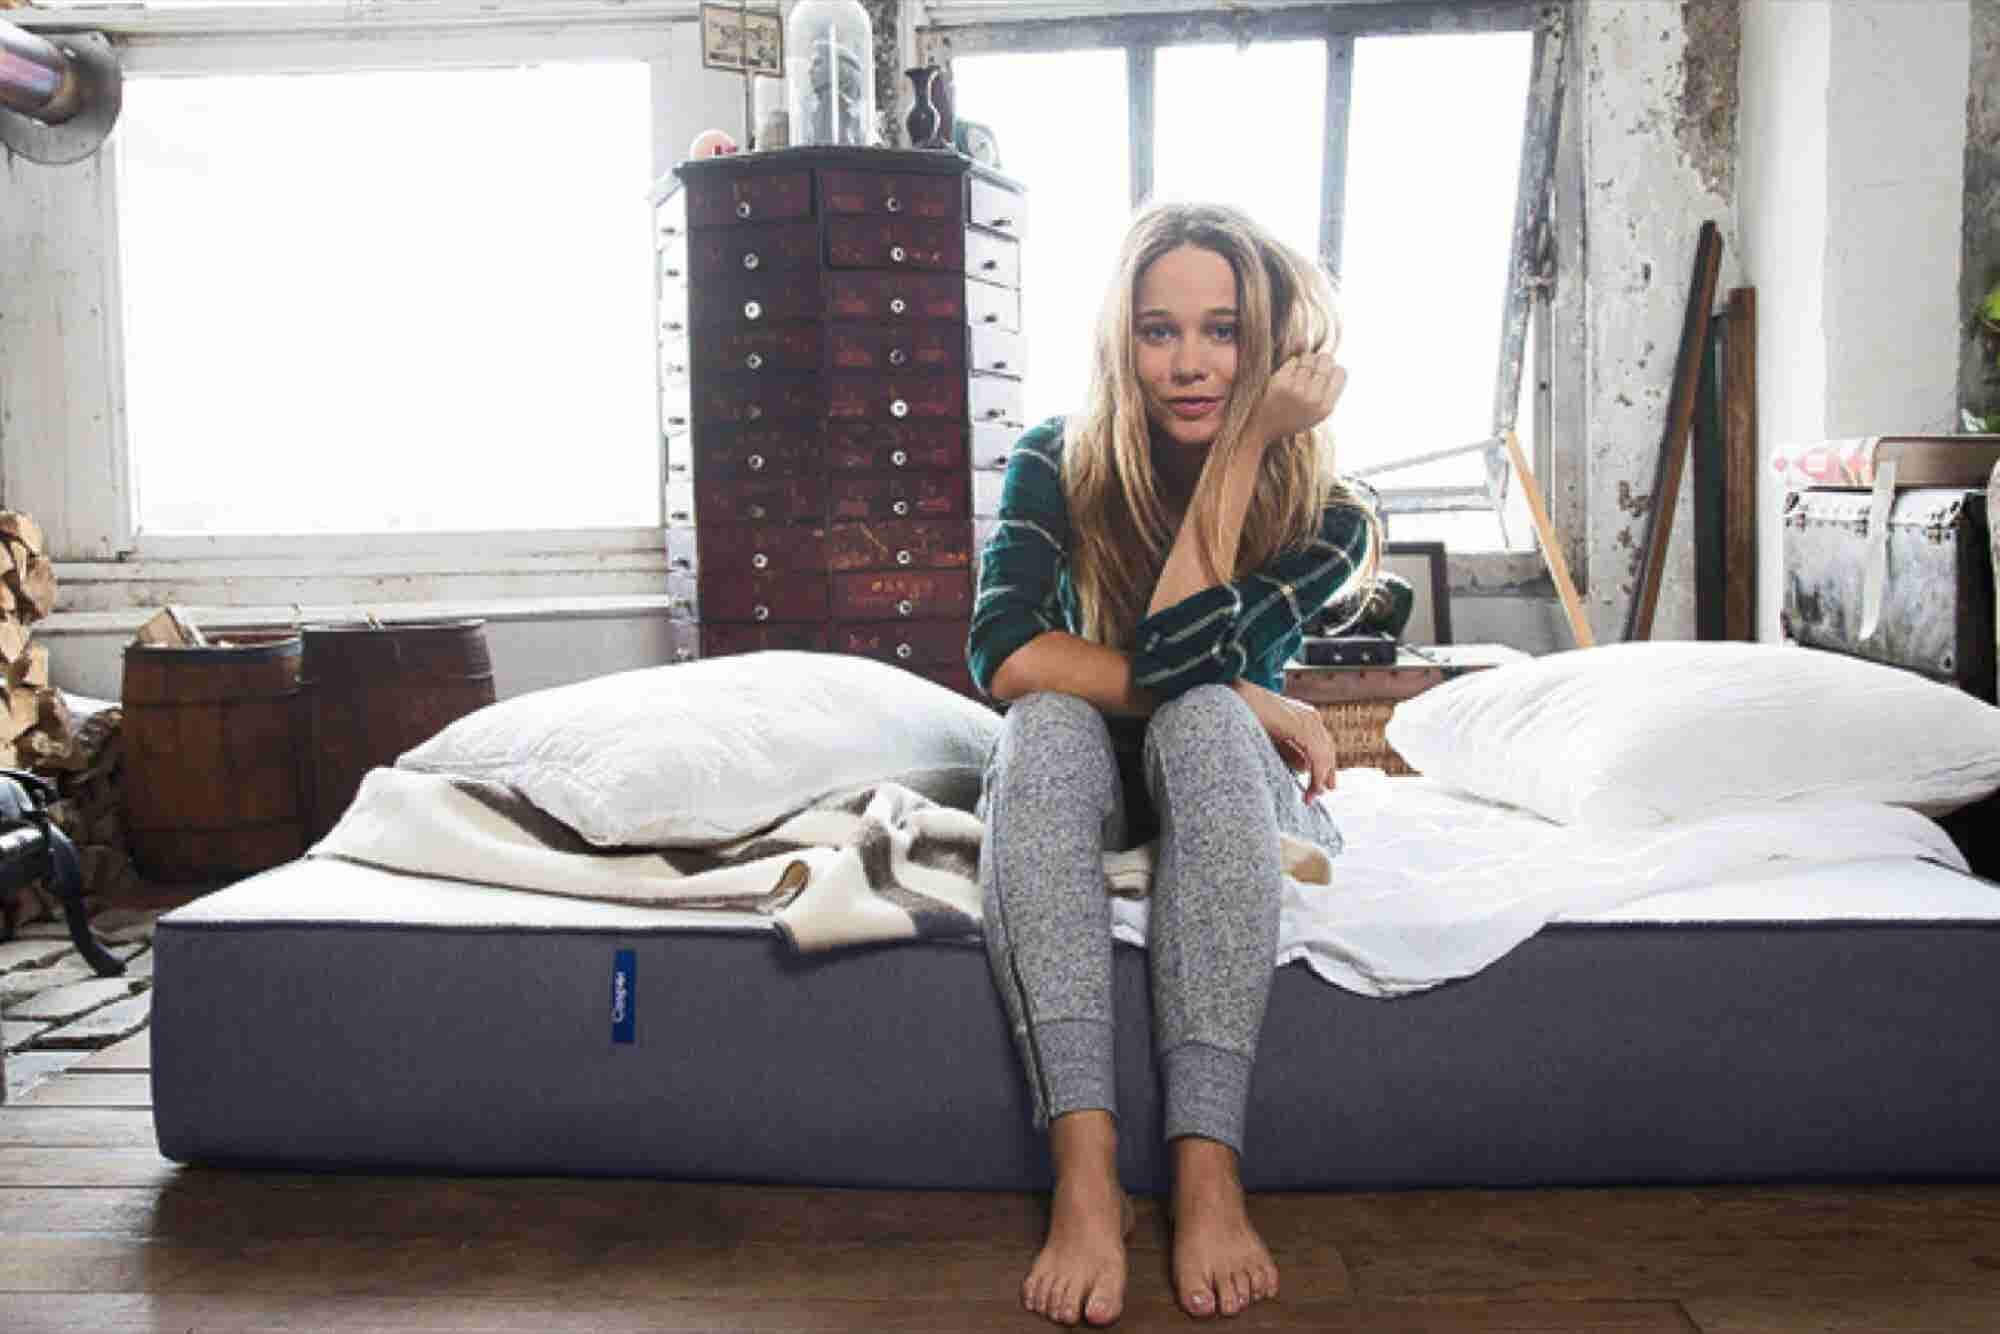 Mattress Startup Casper Is Bringing Its One-Model-Fits-All Approach to...